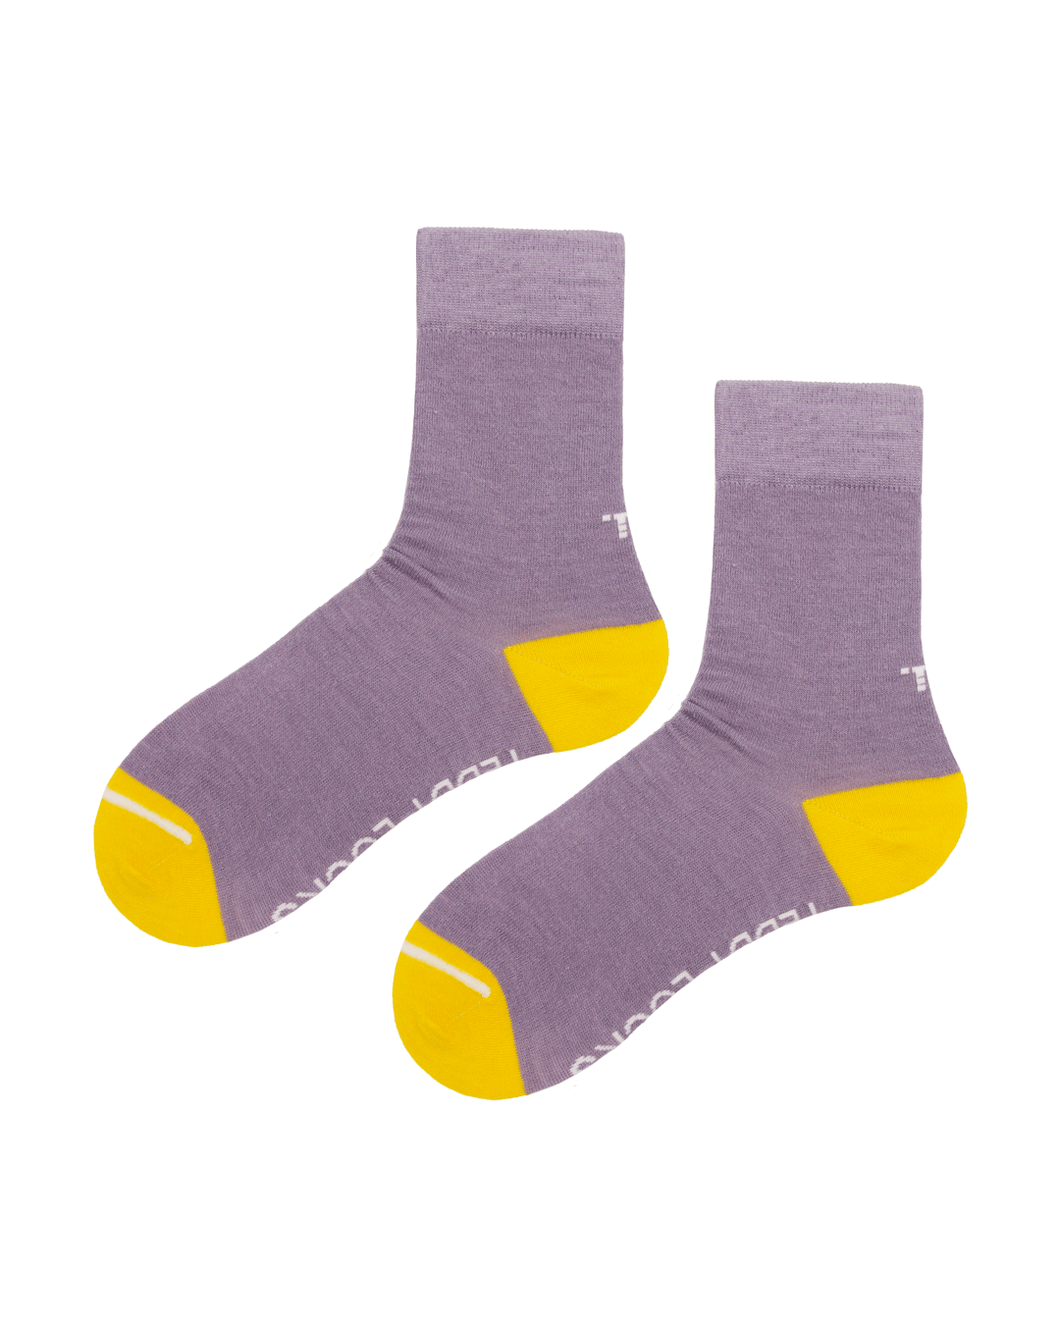 Lilac crew socks with yellow toe and heel. Socks made in the USA from recycled plastic bottles.